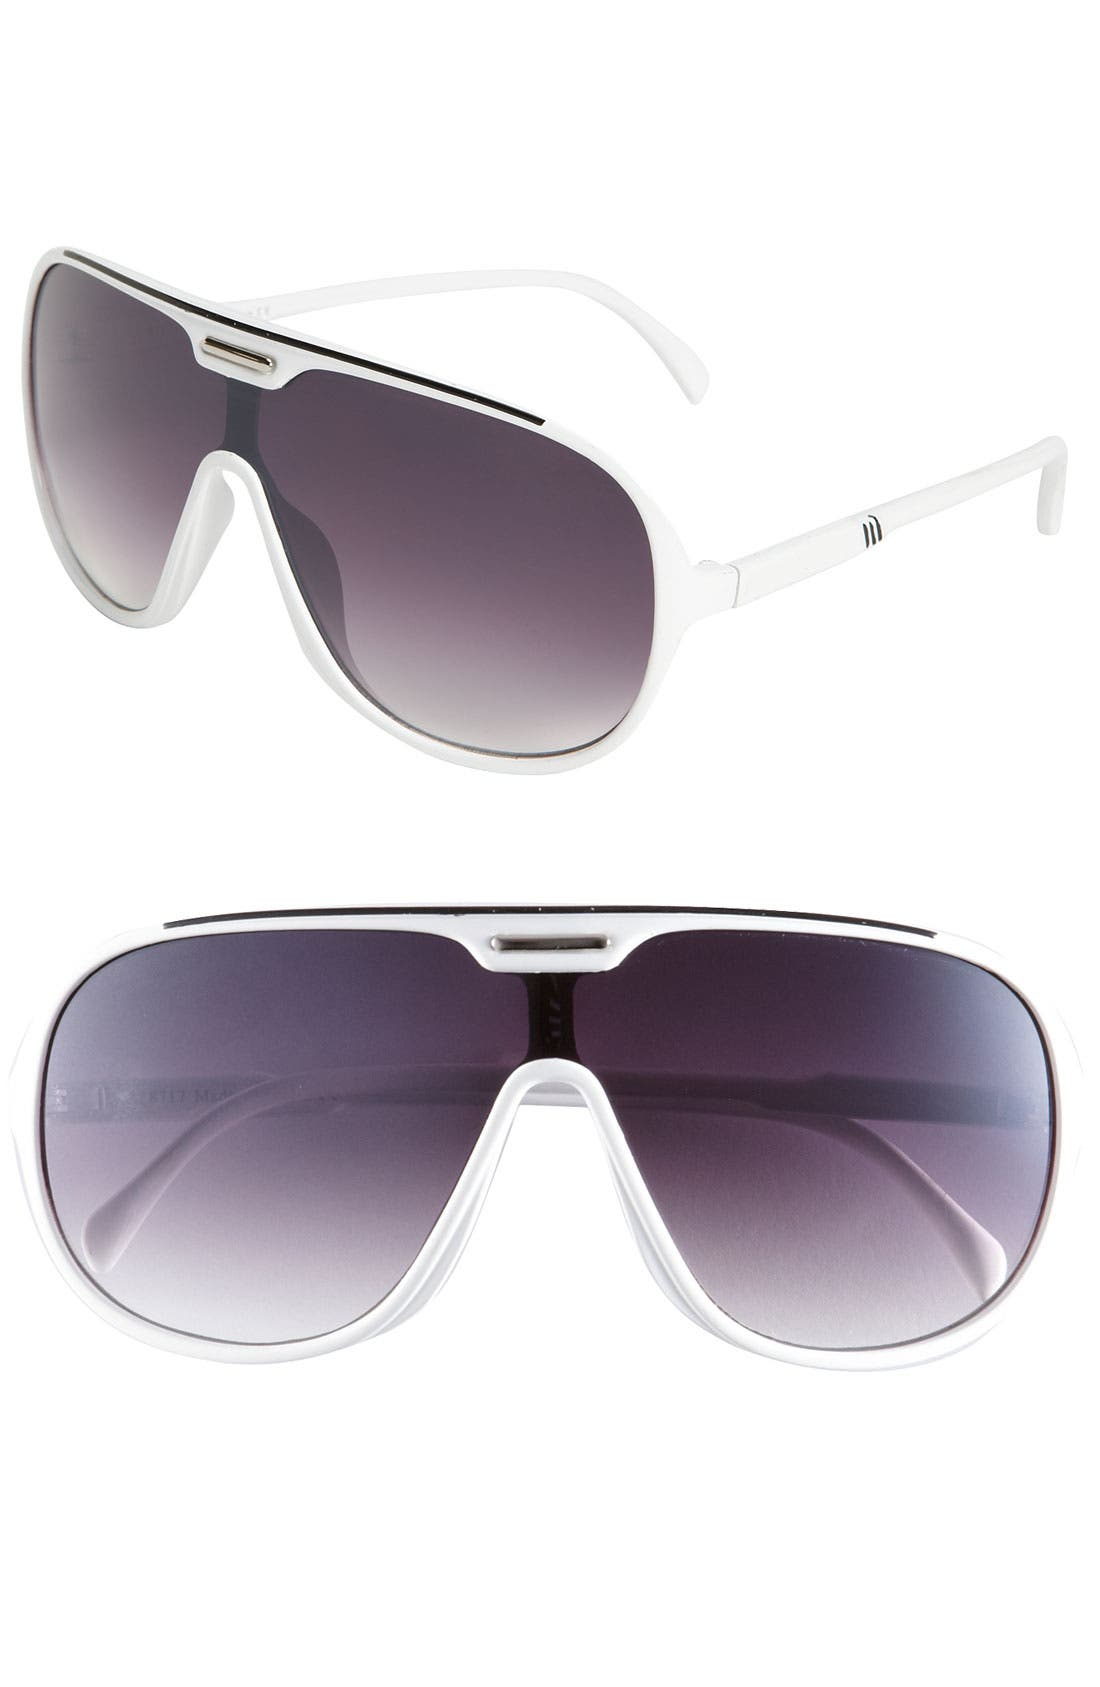 Alternate Image 1 Selected - KW 'Viper' Aviator Sunglasses